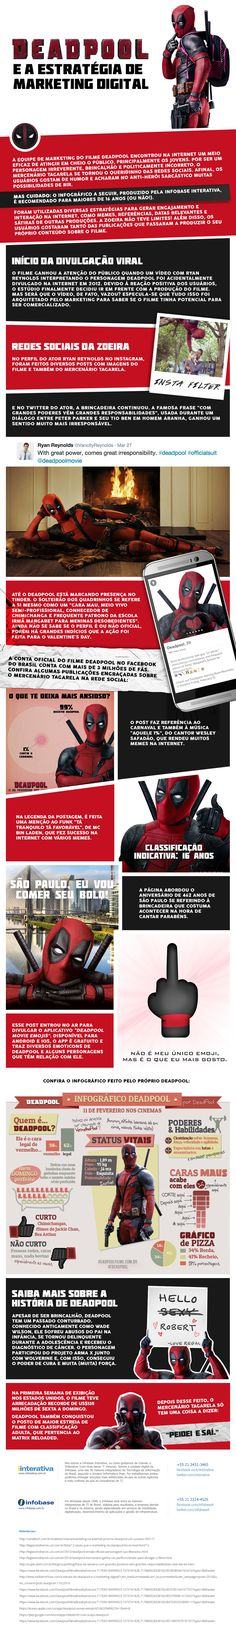 Este infográfico detalha a estratégia de marketing do filme